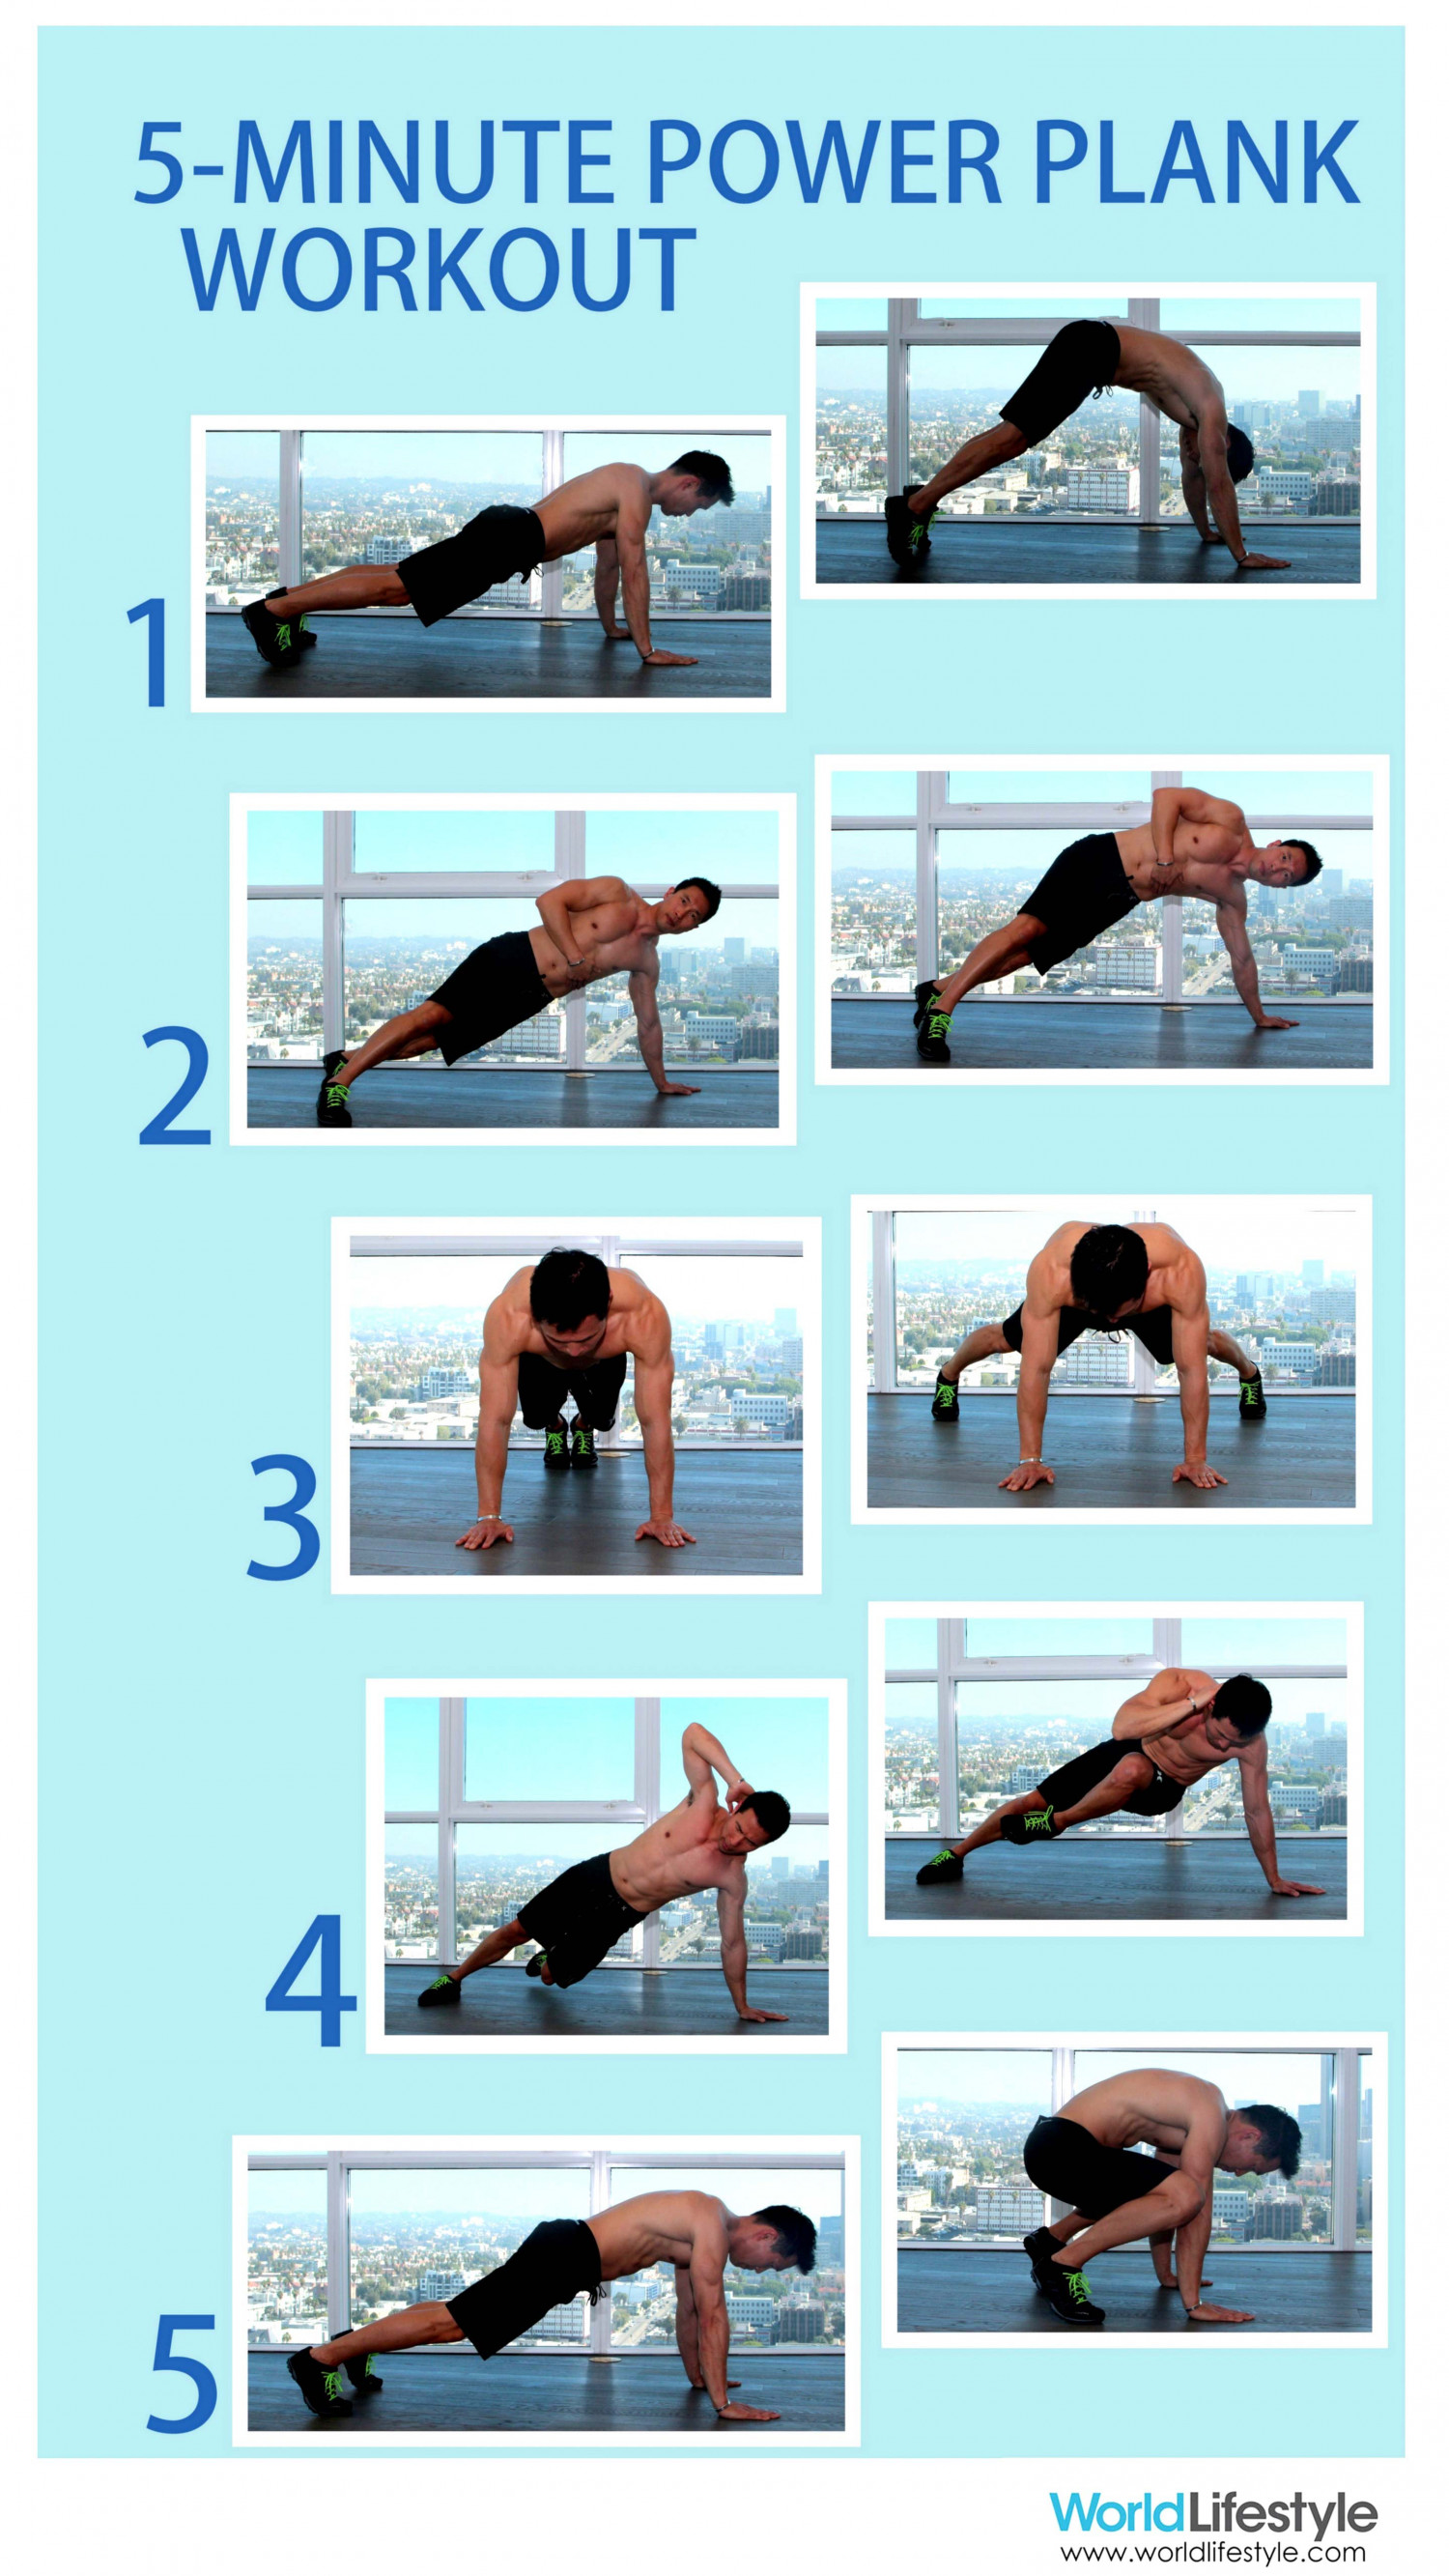 5-Minute Power Plank Workout Infographic